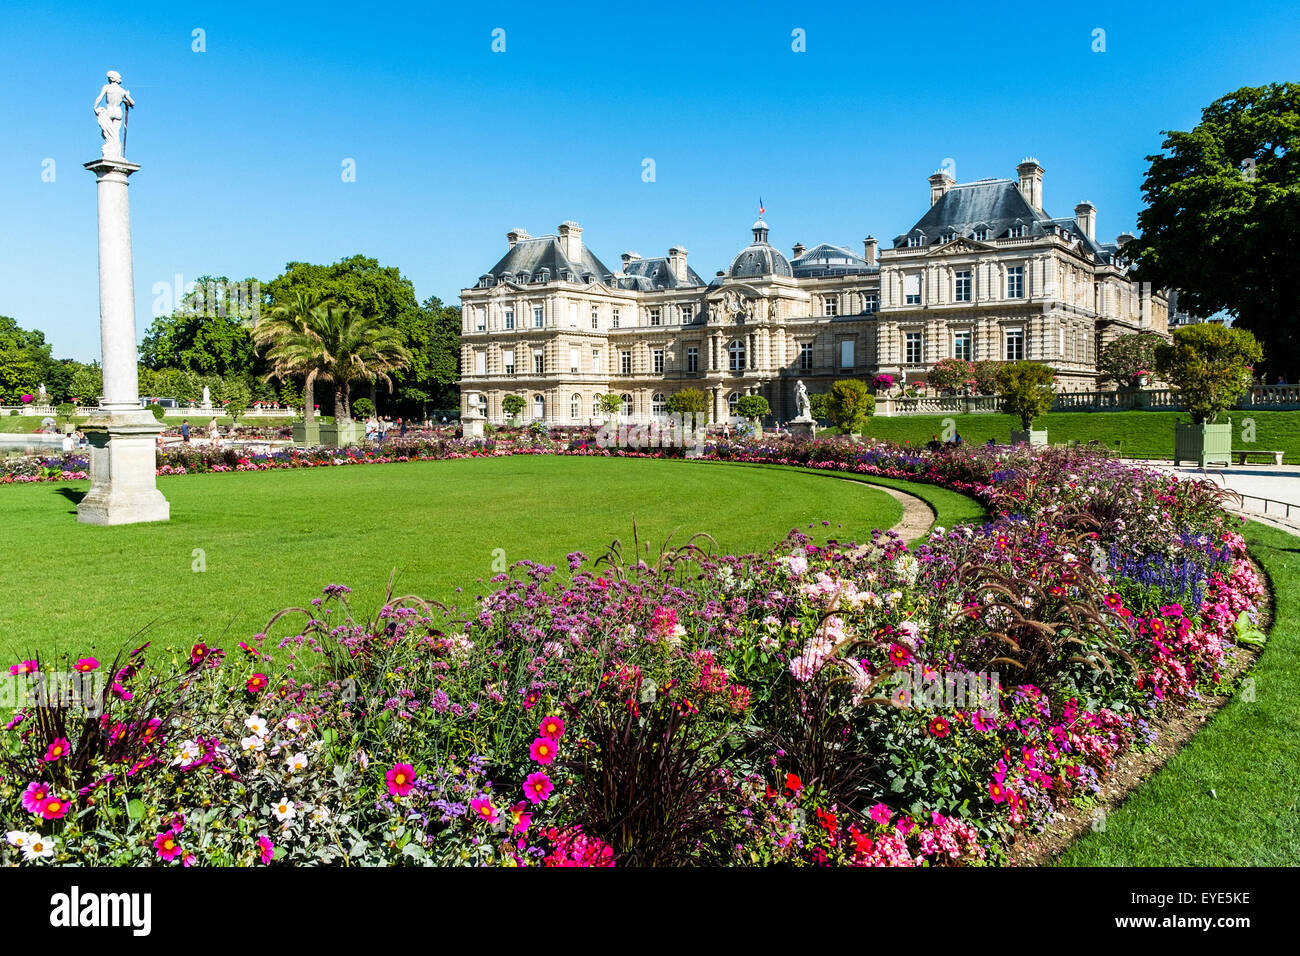 Le jardin du luxembourg gardens paris france stock photo for Jardin jardin paris